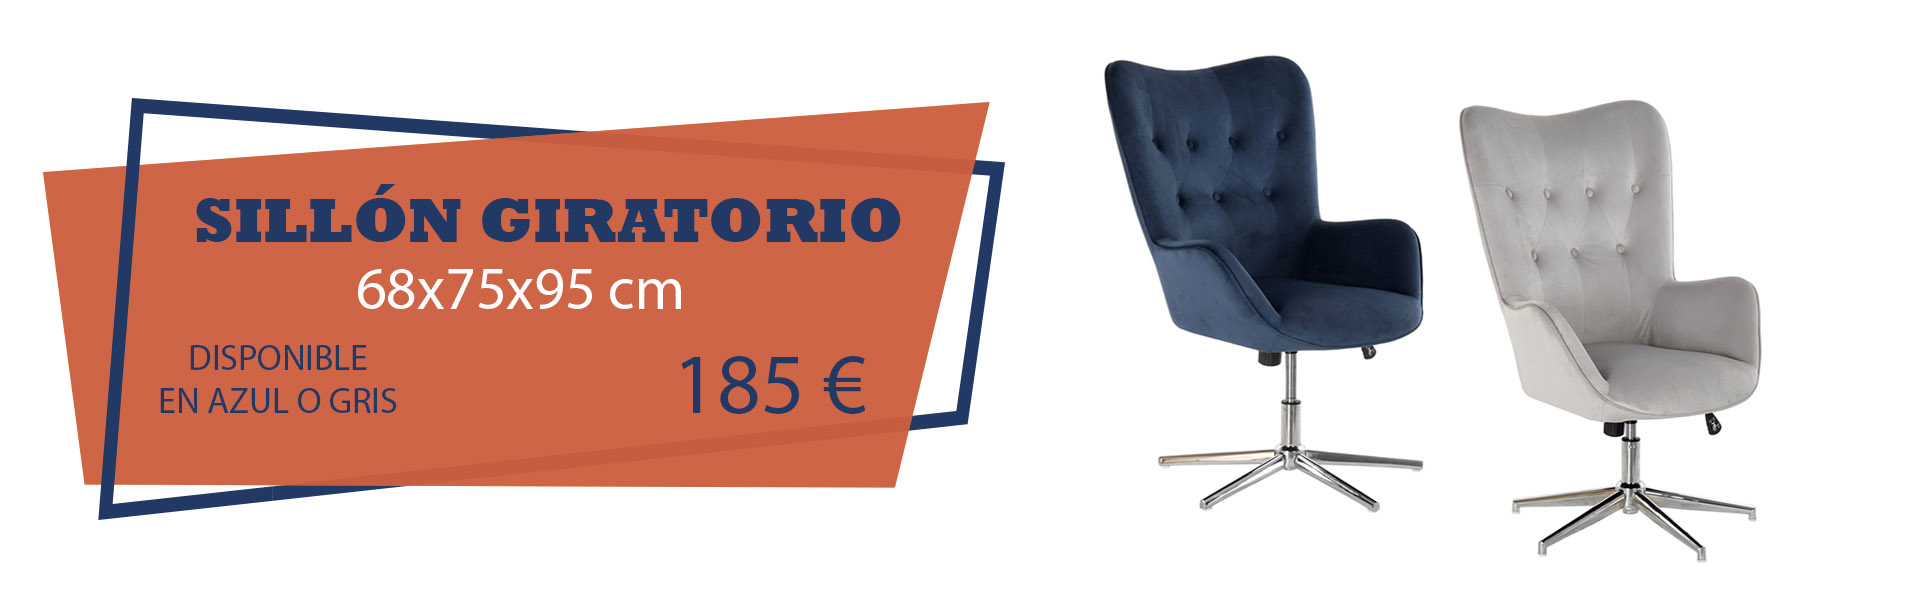 SILLON-GIRATORIO__